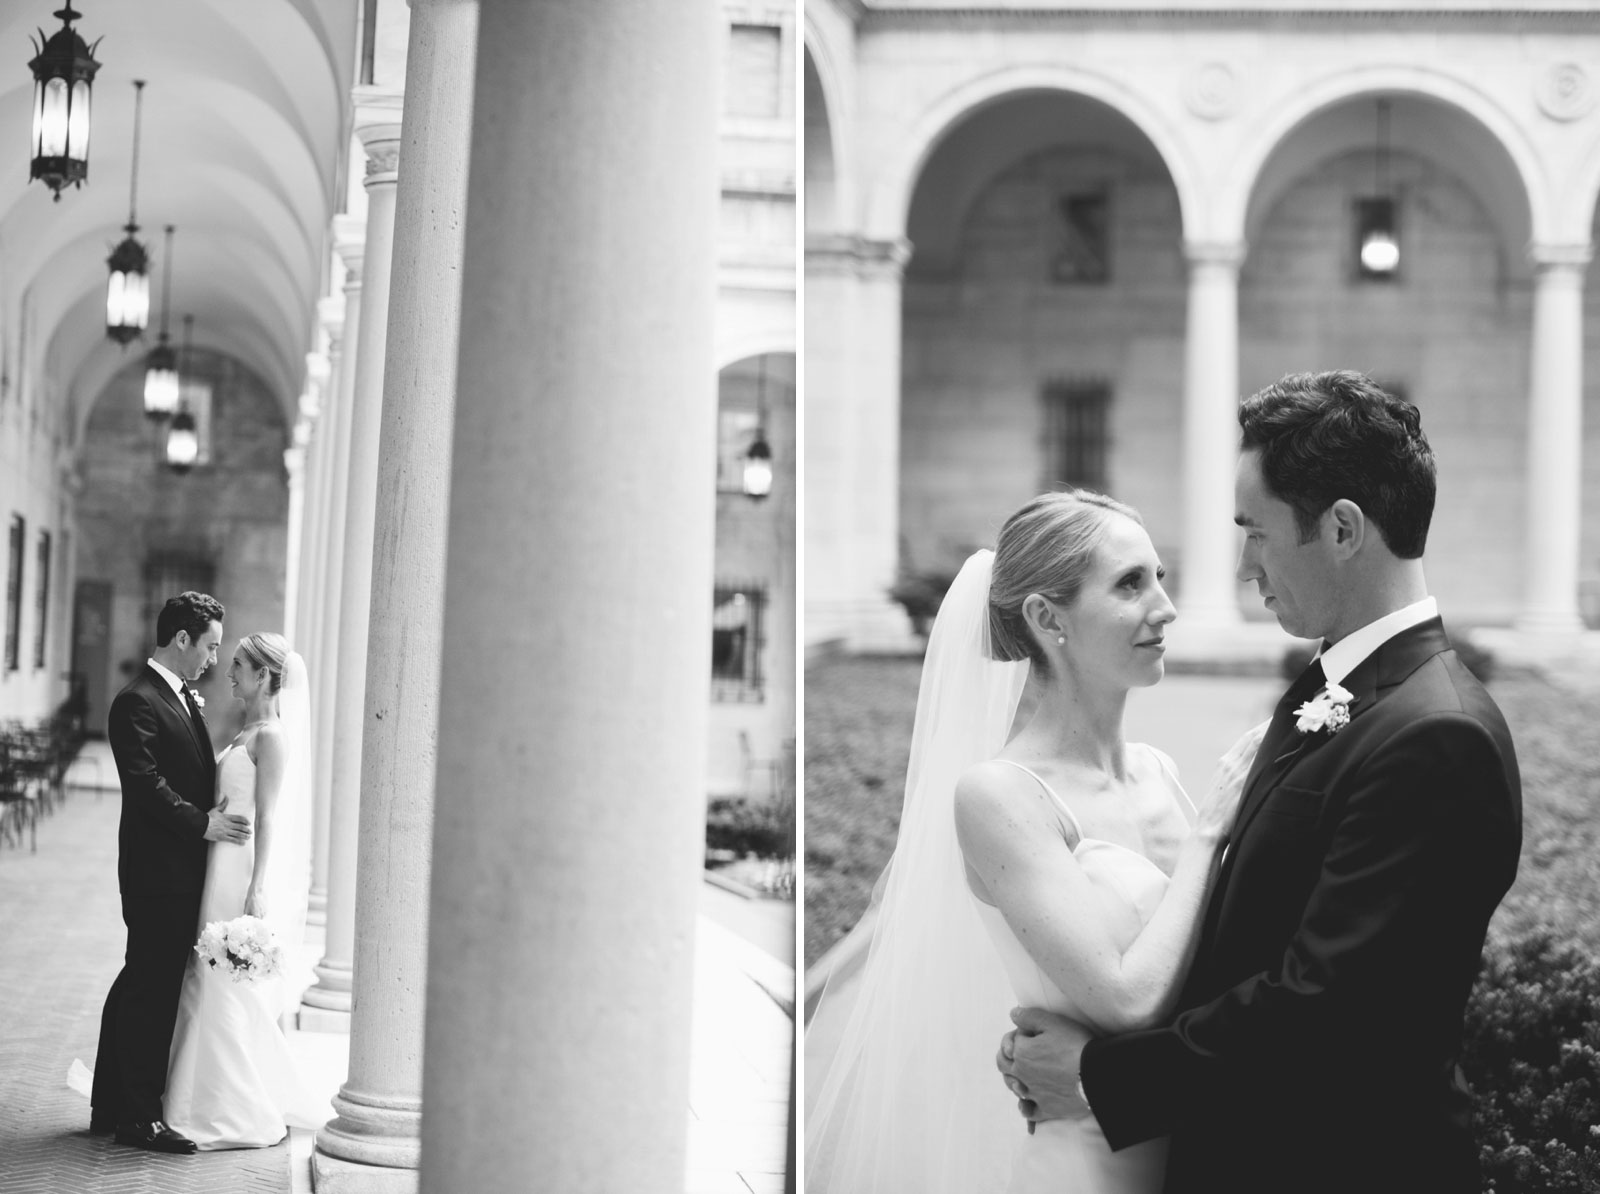 romantic natural light wedding portraits at Boston Public Library courtyard in black and white